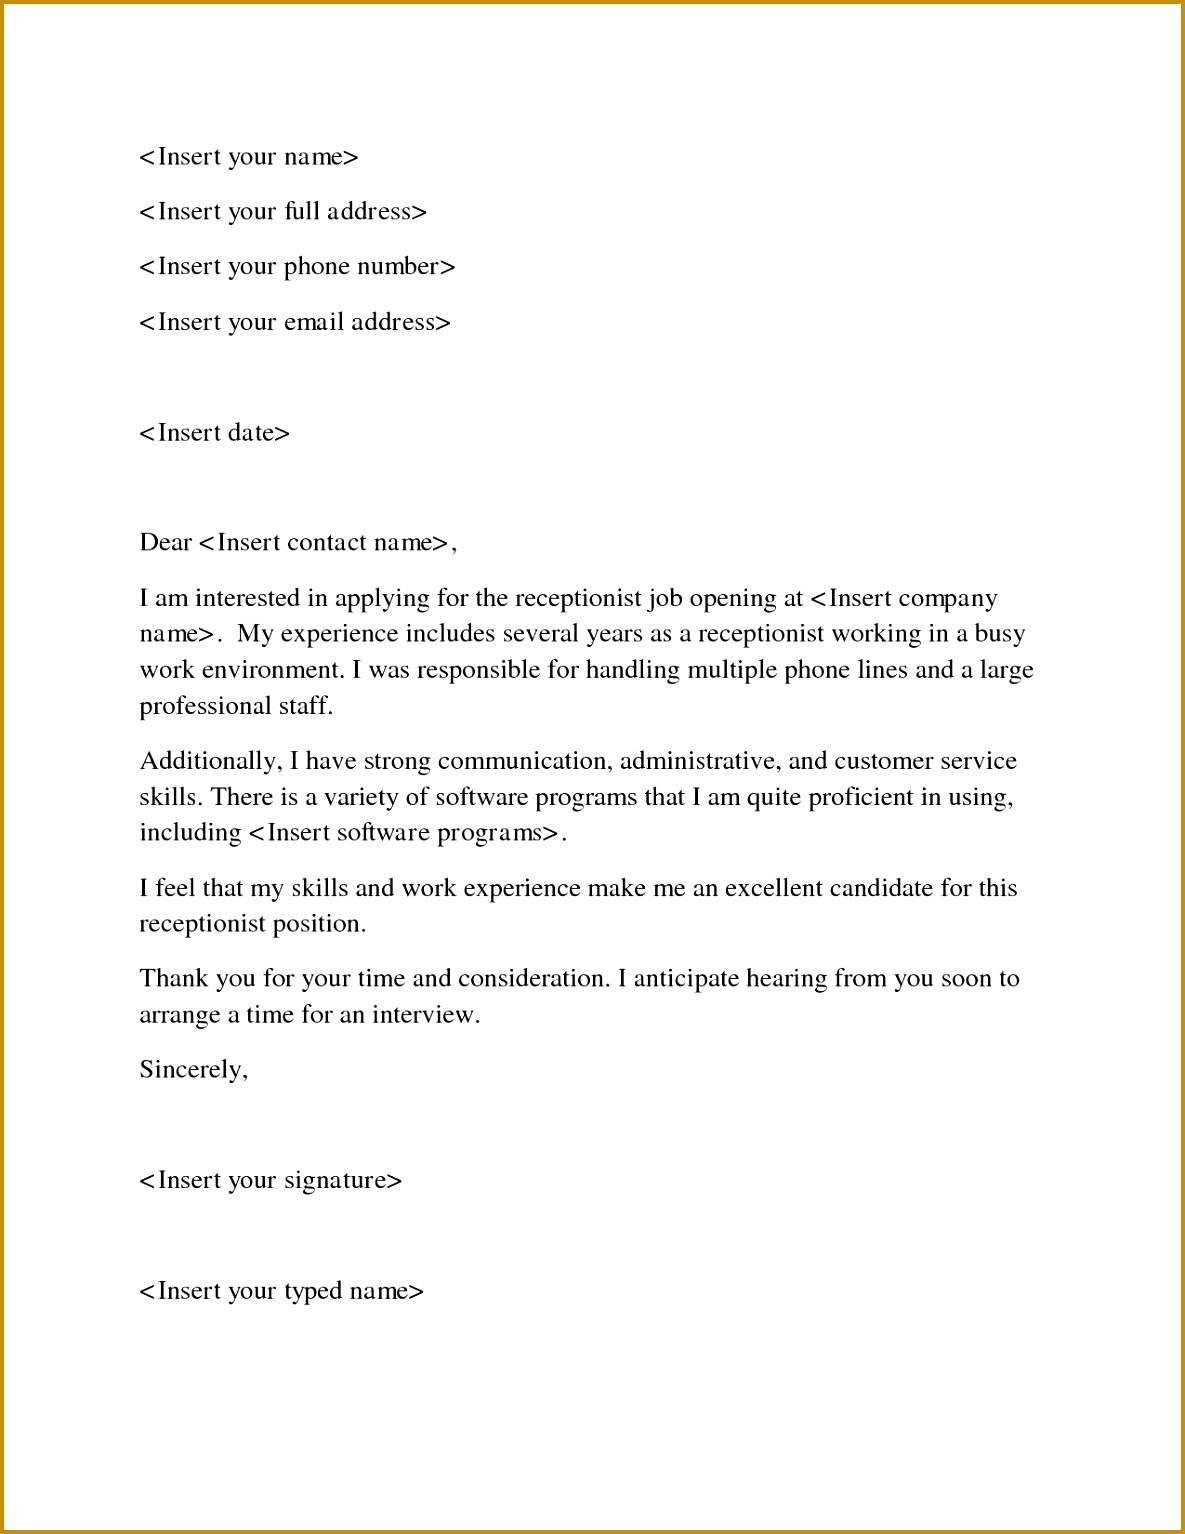 Job Aplication Cover Letter Save New Example Cover Letter For Resume Inspirational Job Letter 0d 15341185